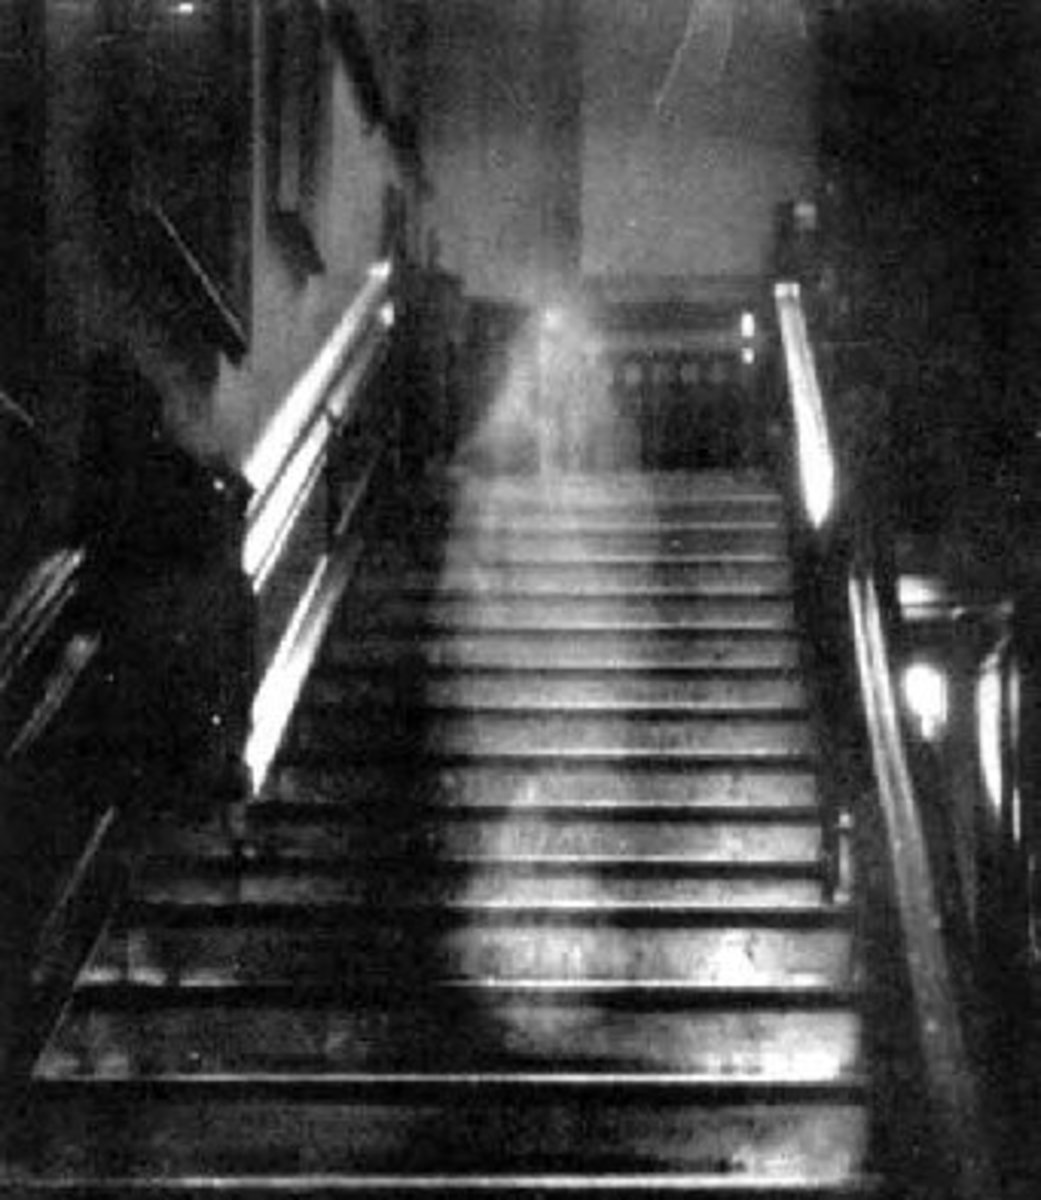 ghost-caught-at-asheville-high-school-nc-what-do-you-thank-is-it-a-ghost